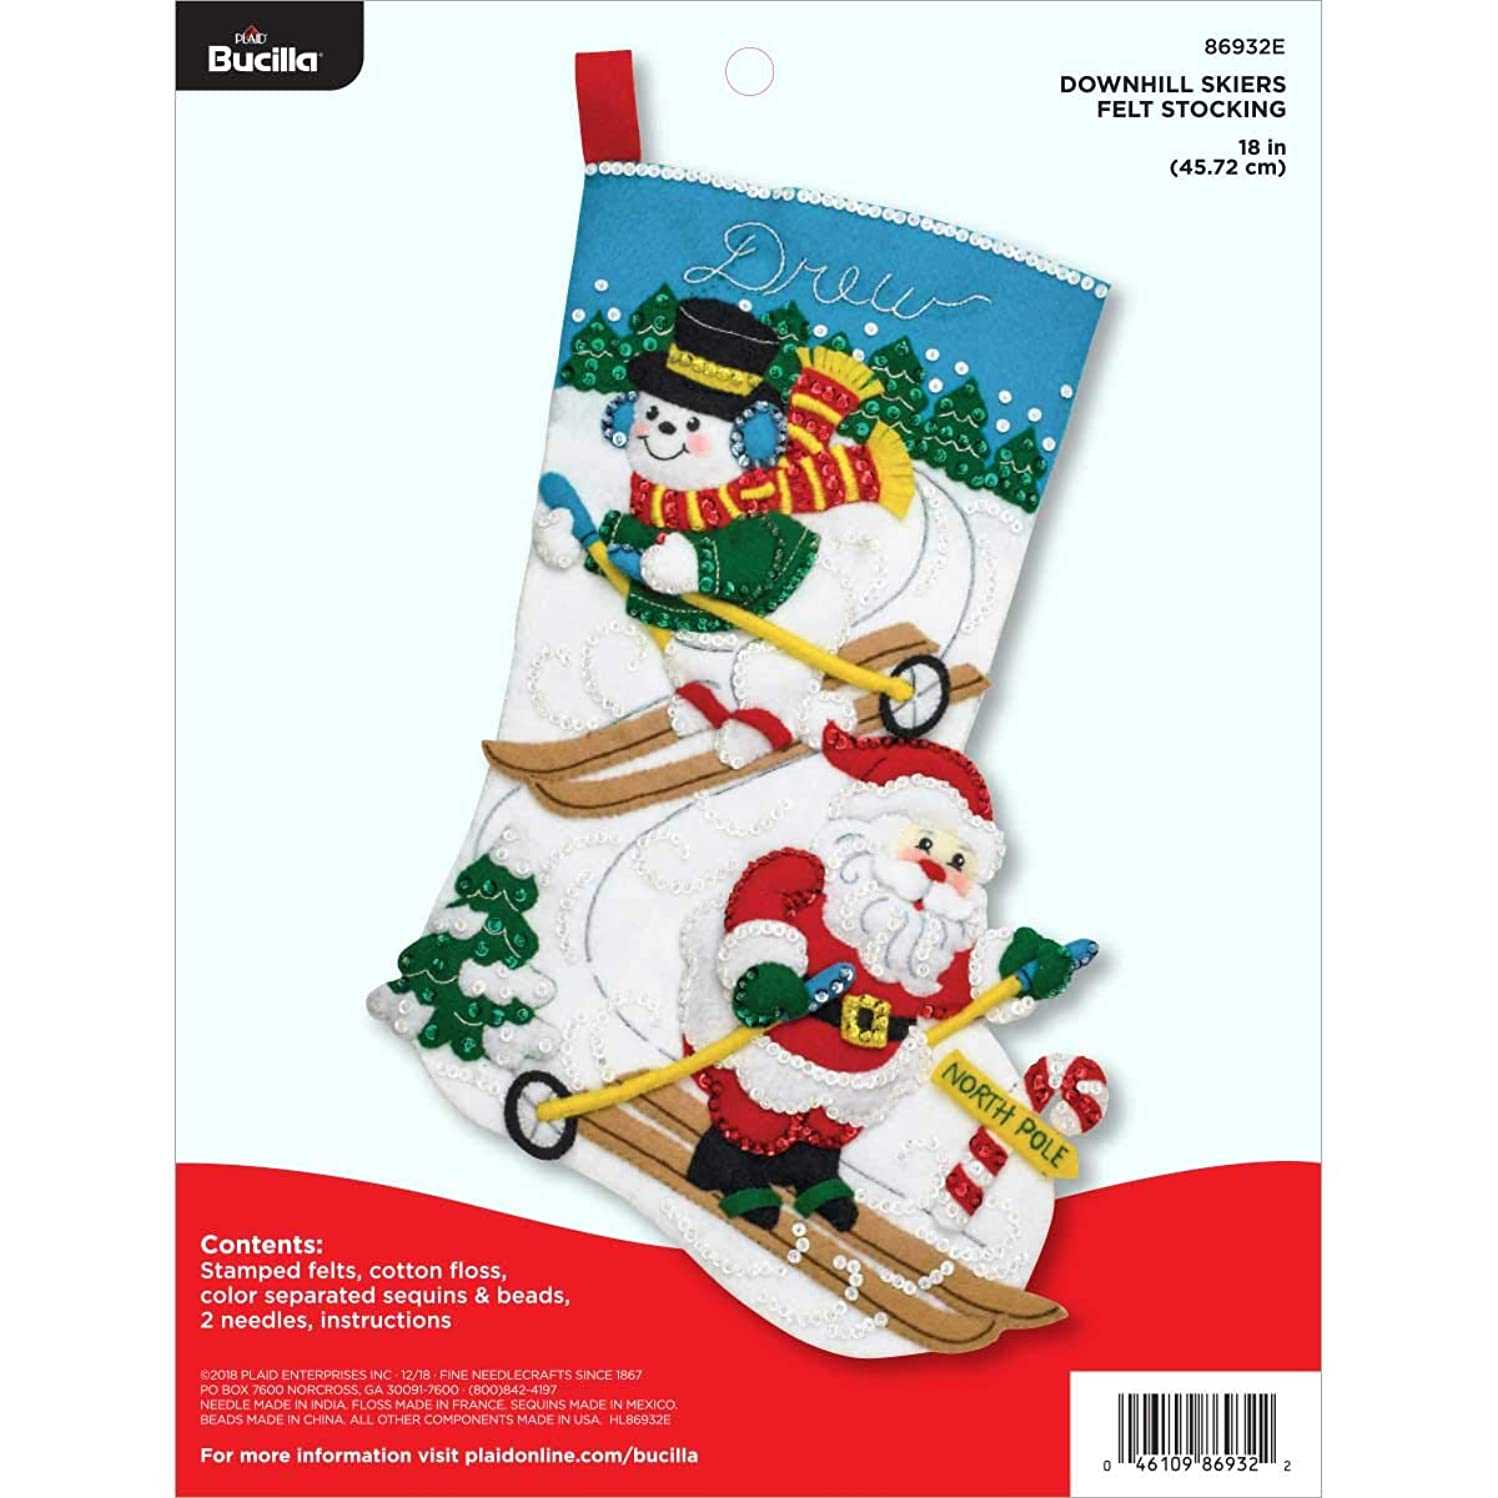 Bucilla 86932E Felt Stocking Applique Kit, 18